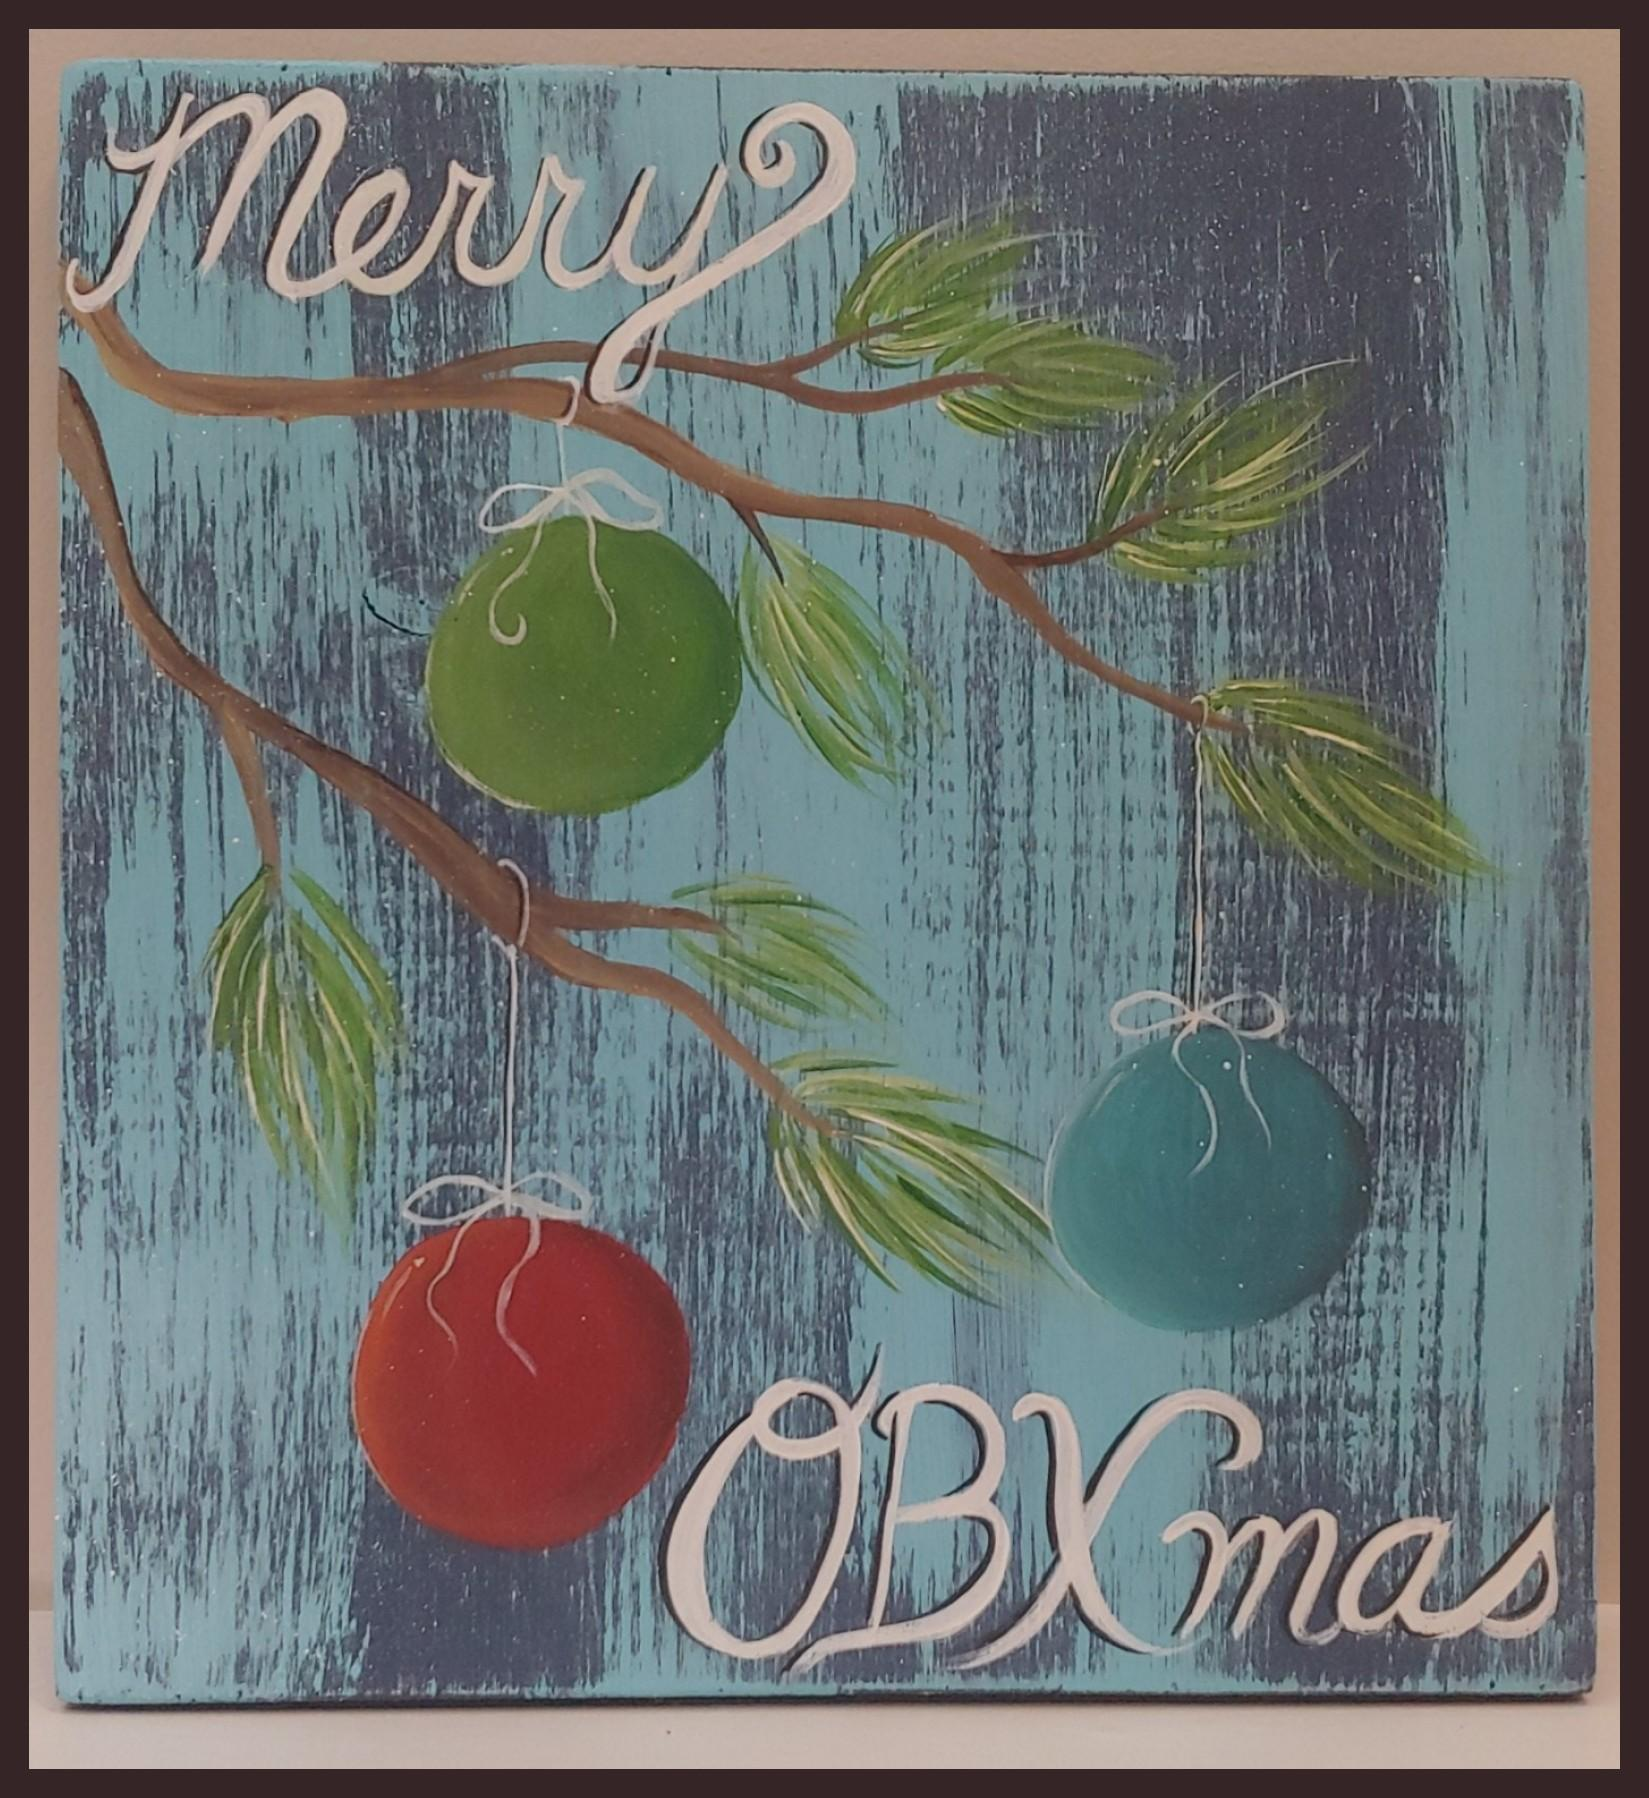 Painting Class - OBXmas on 12x12 Wooden Plank